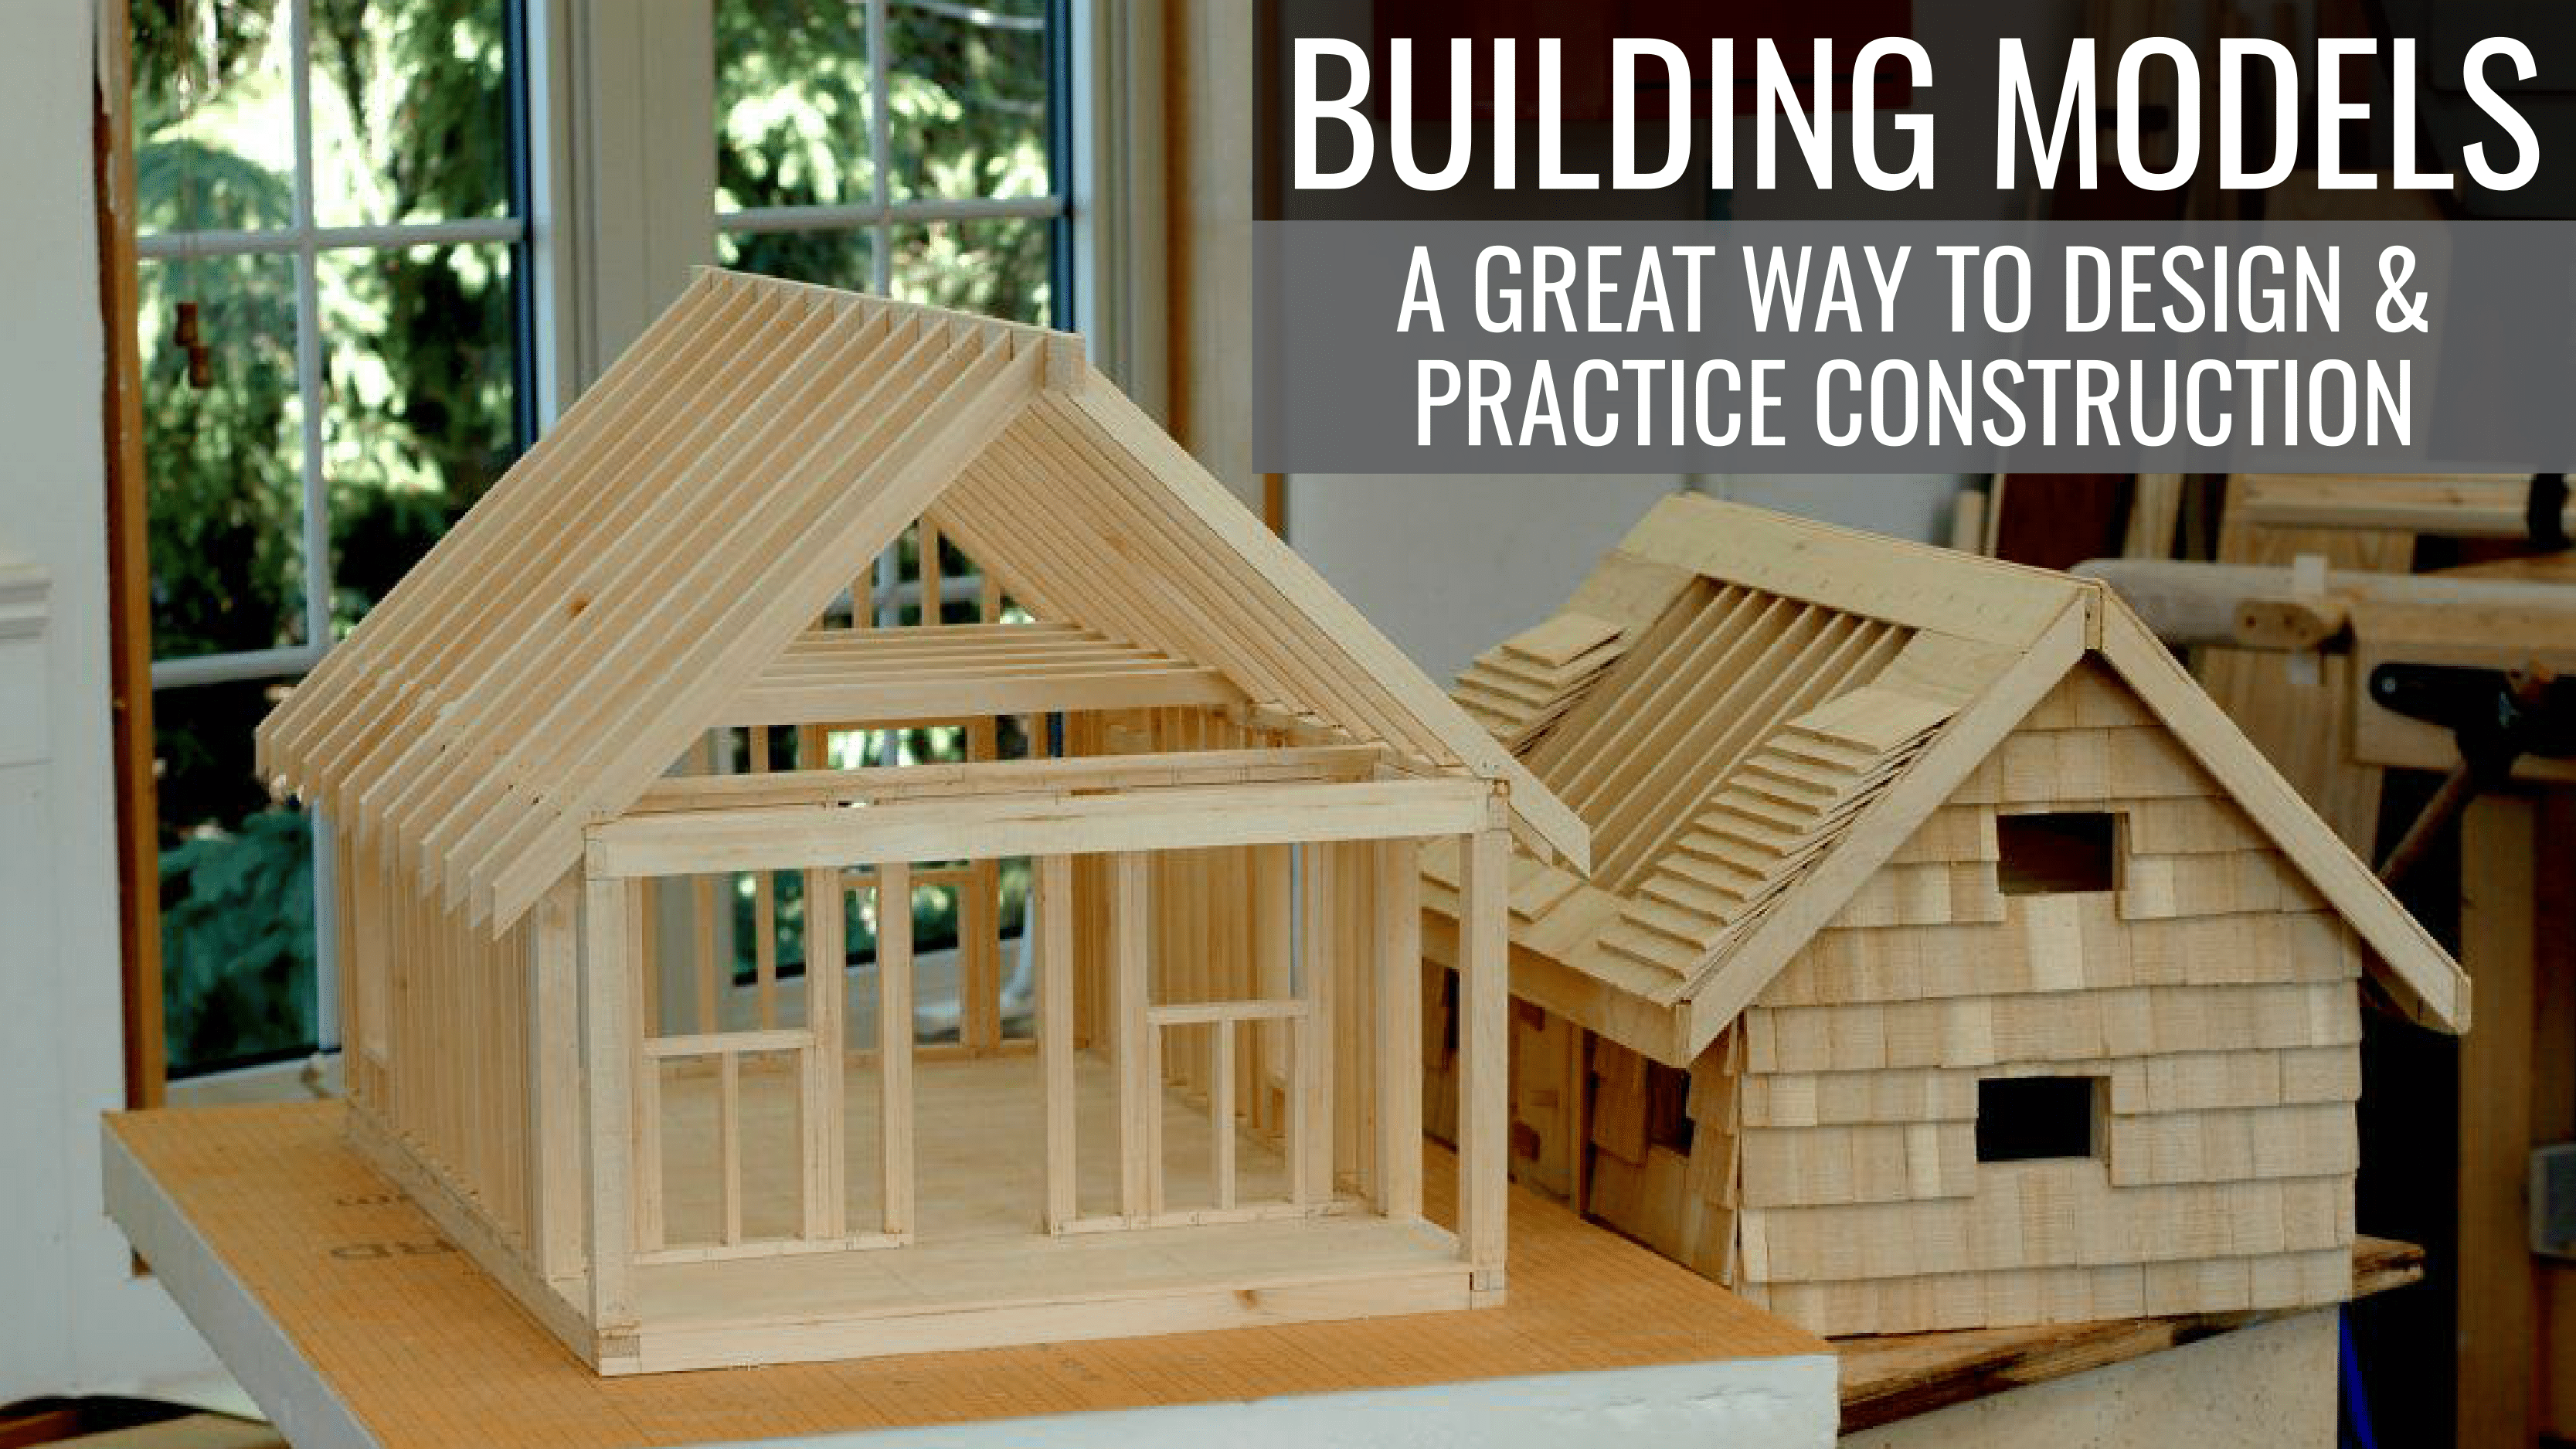 How To Build A Scale Model Of A House Outdoor Woodworking Projects Woodworking Projects Unique Model Homes